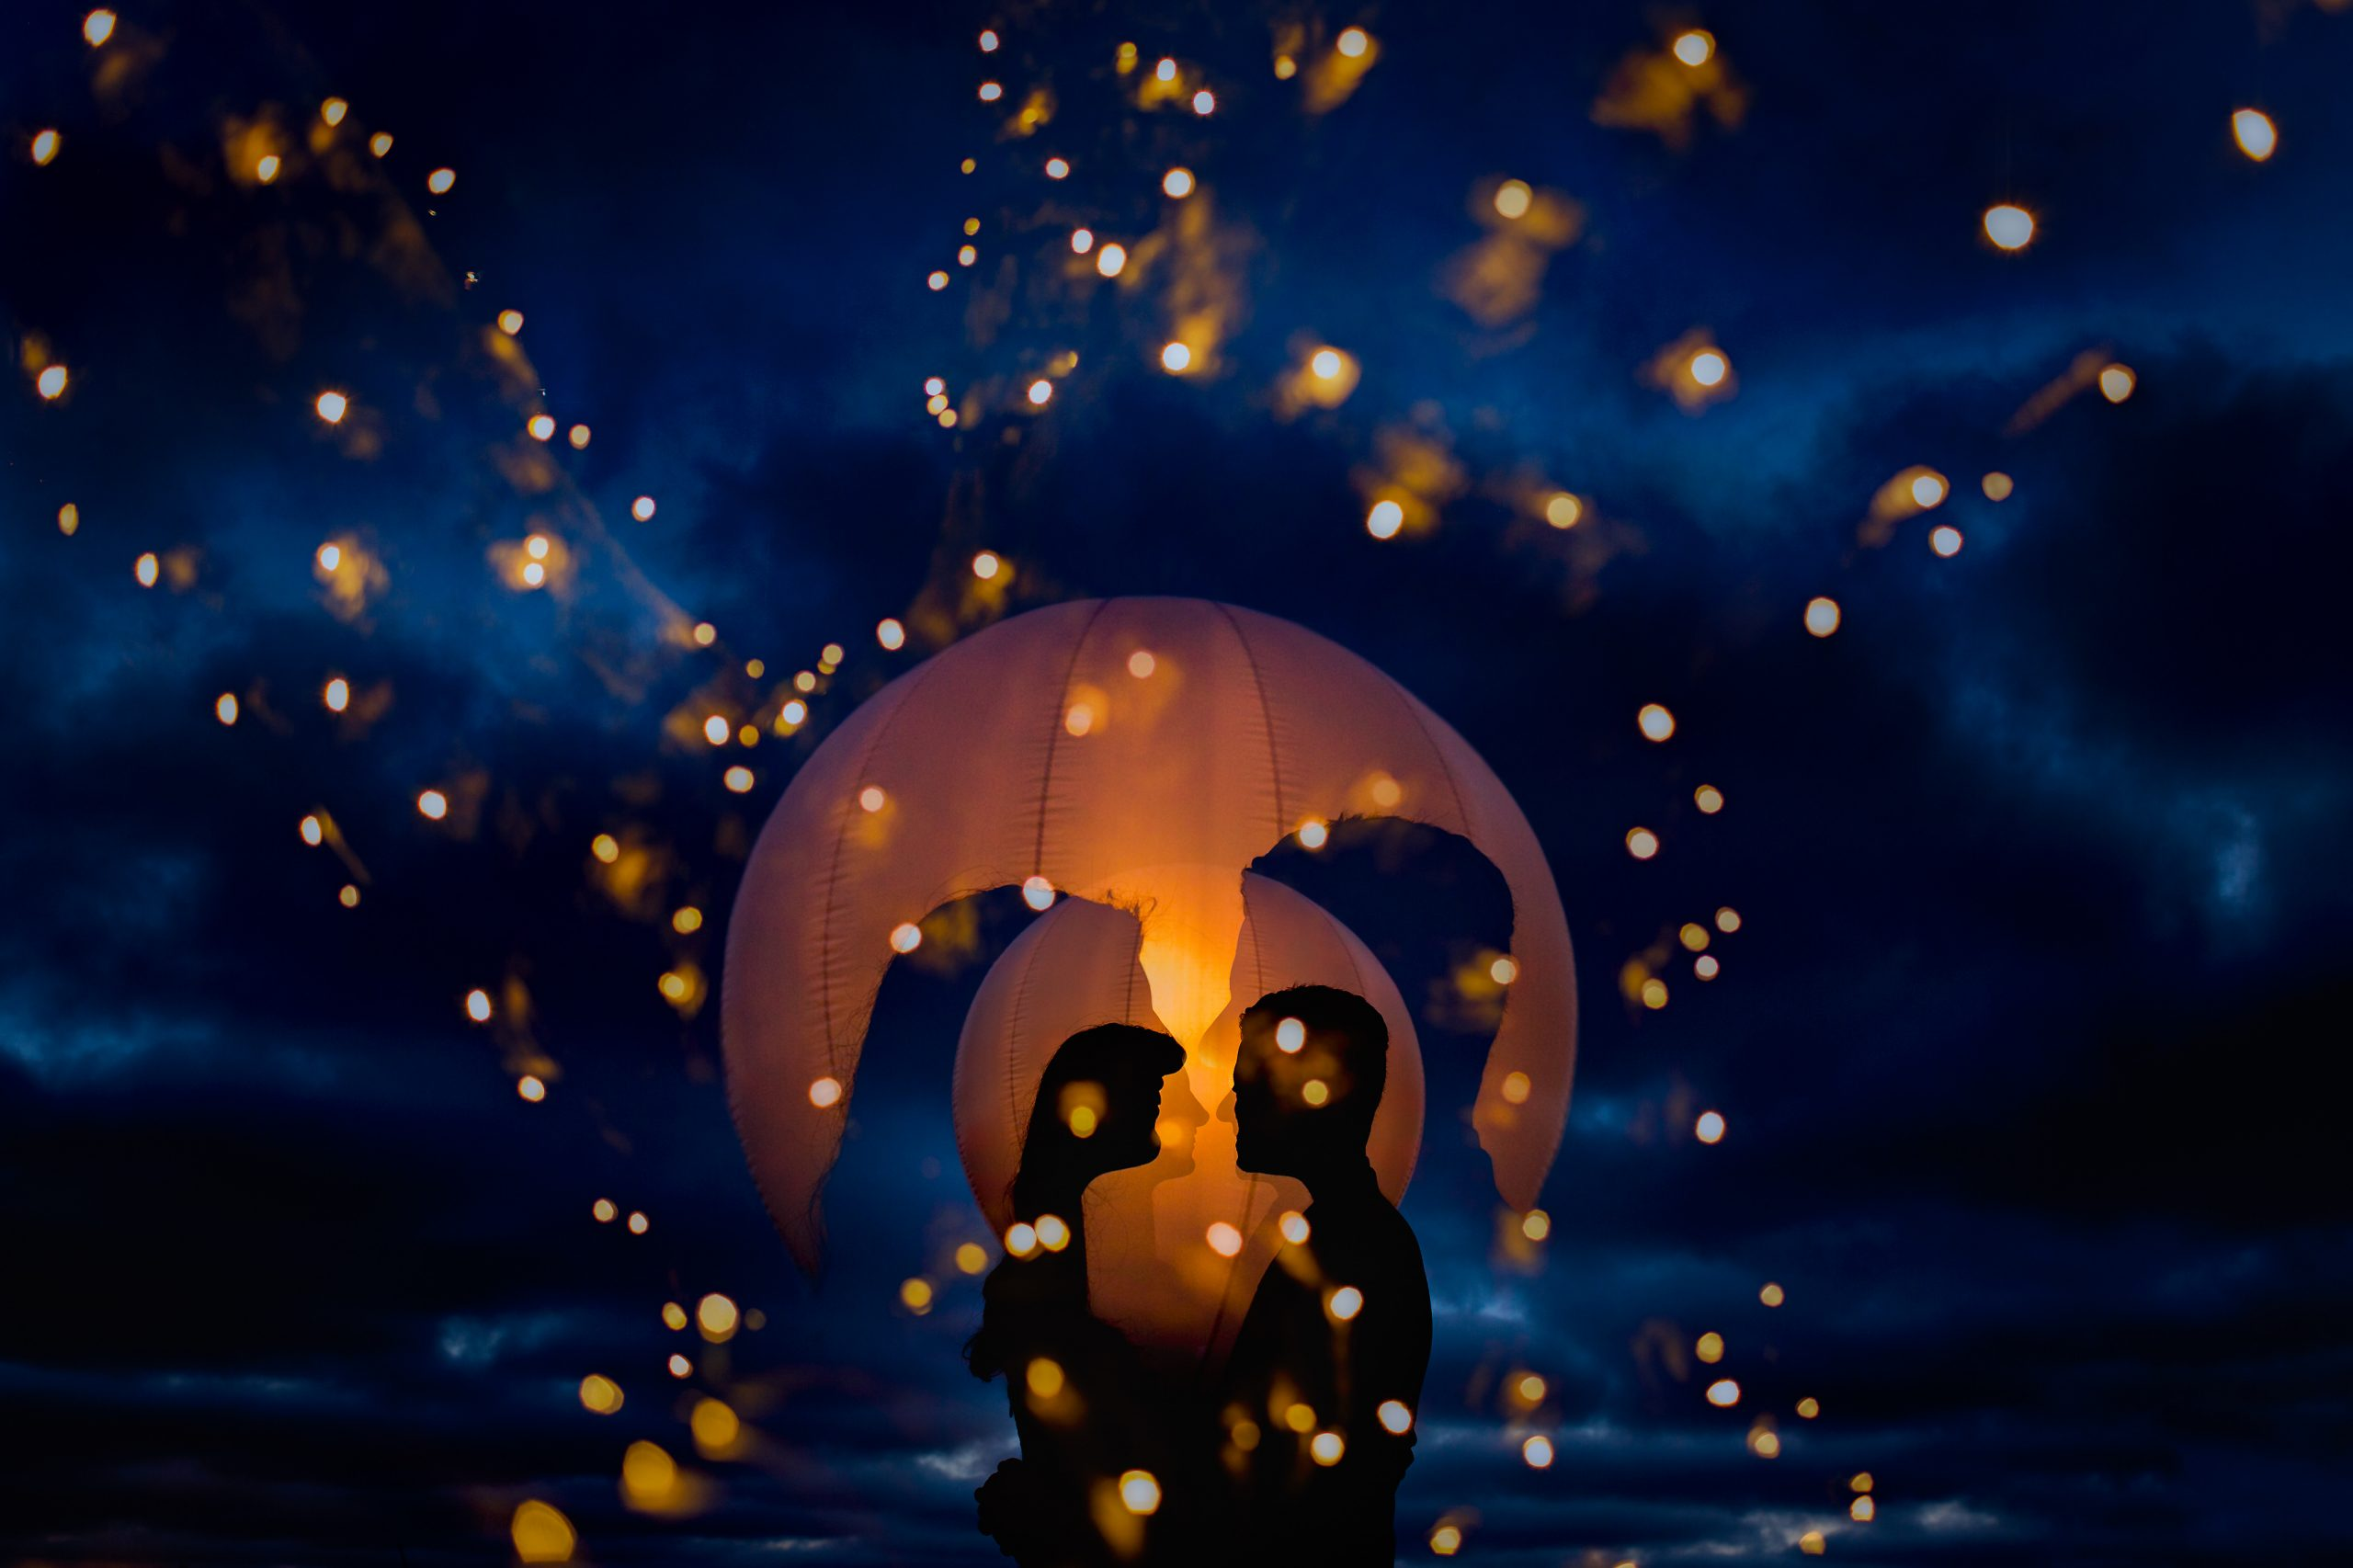 Silhouette of couple embracing with the backdrop of lights and a clouds